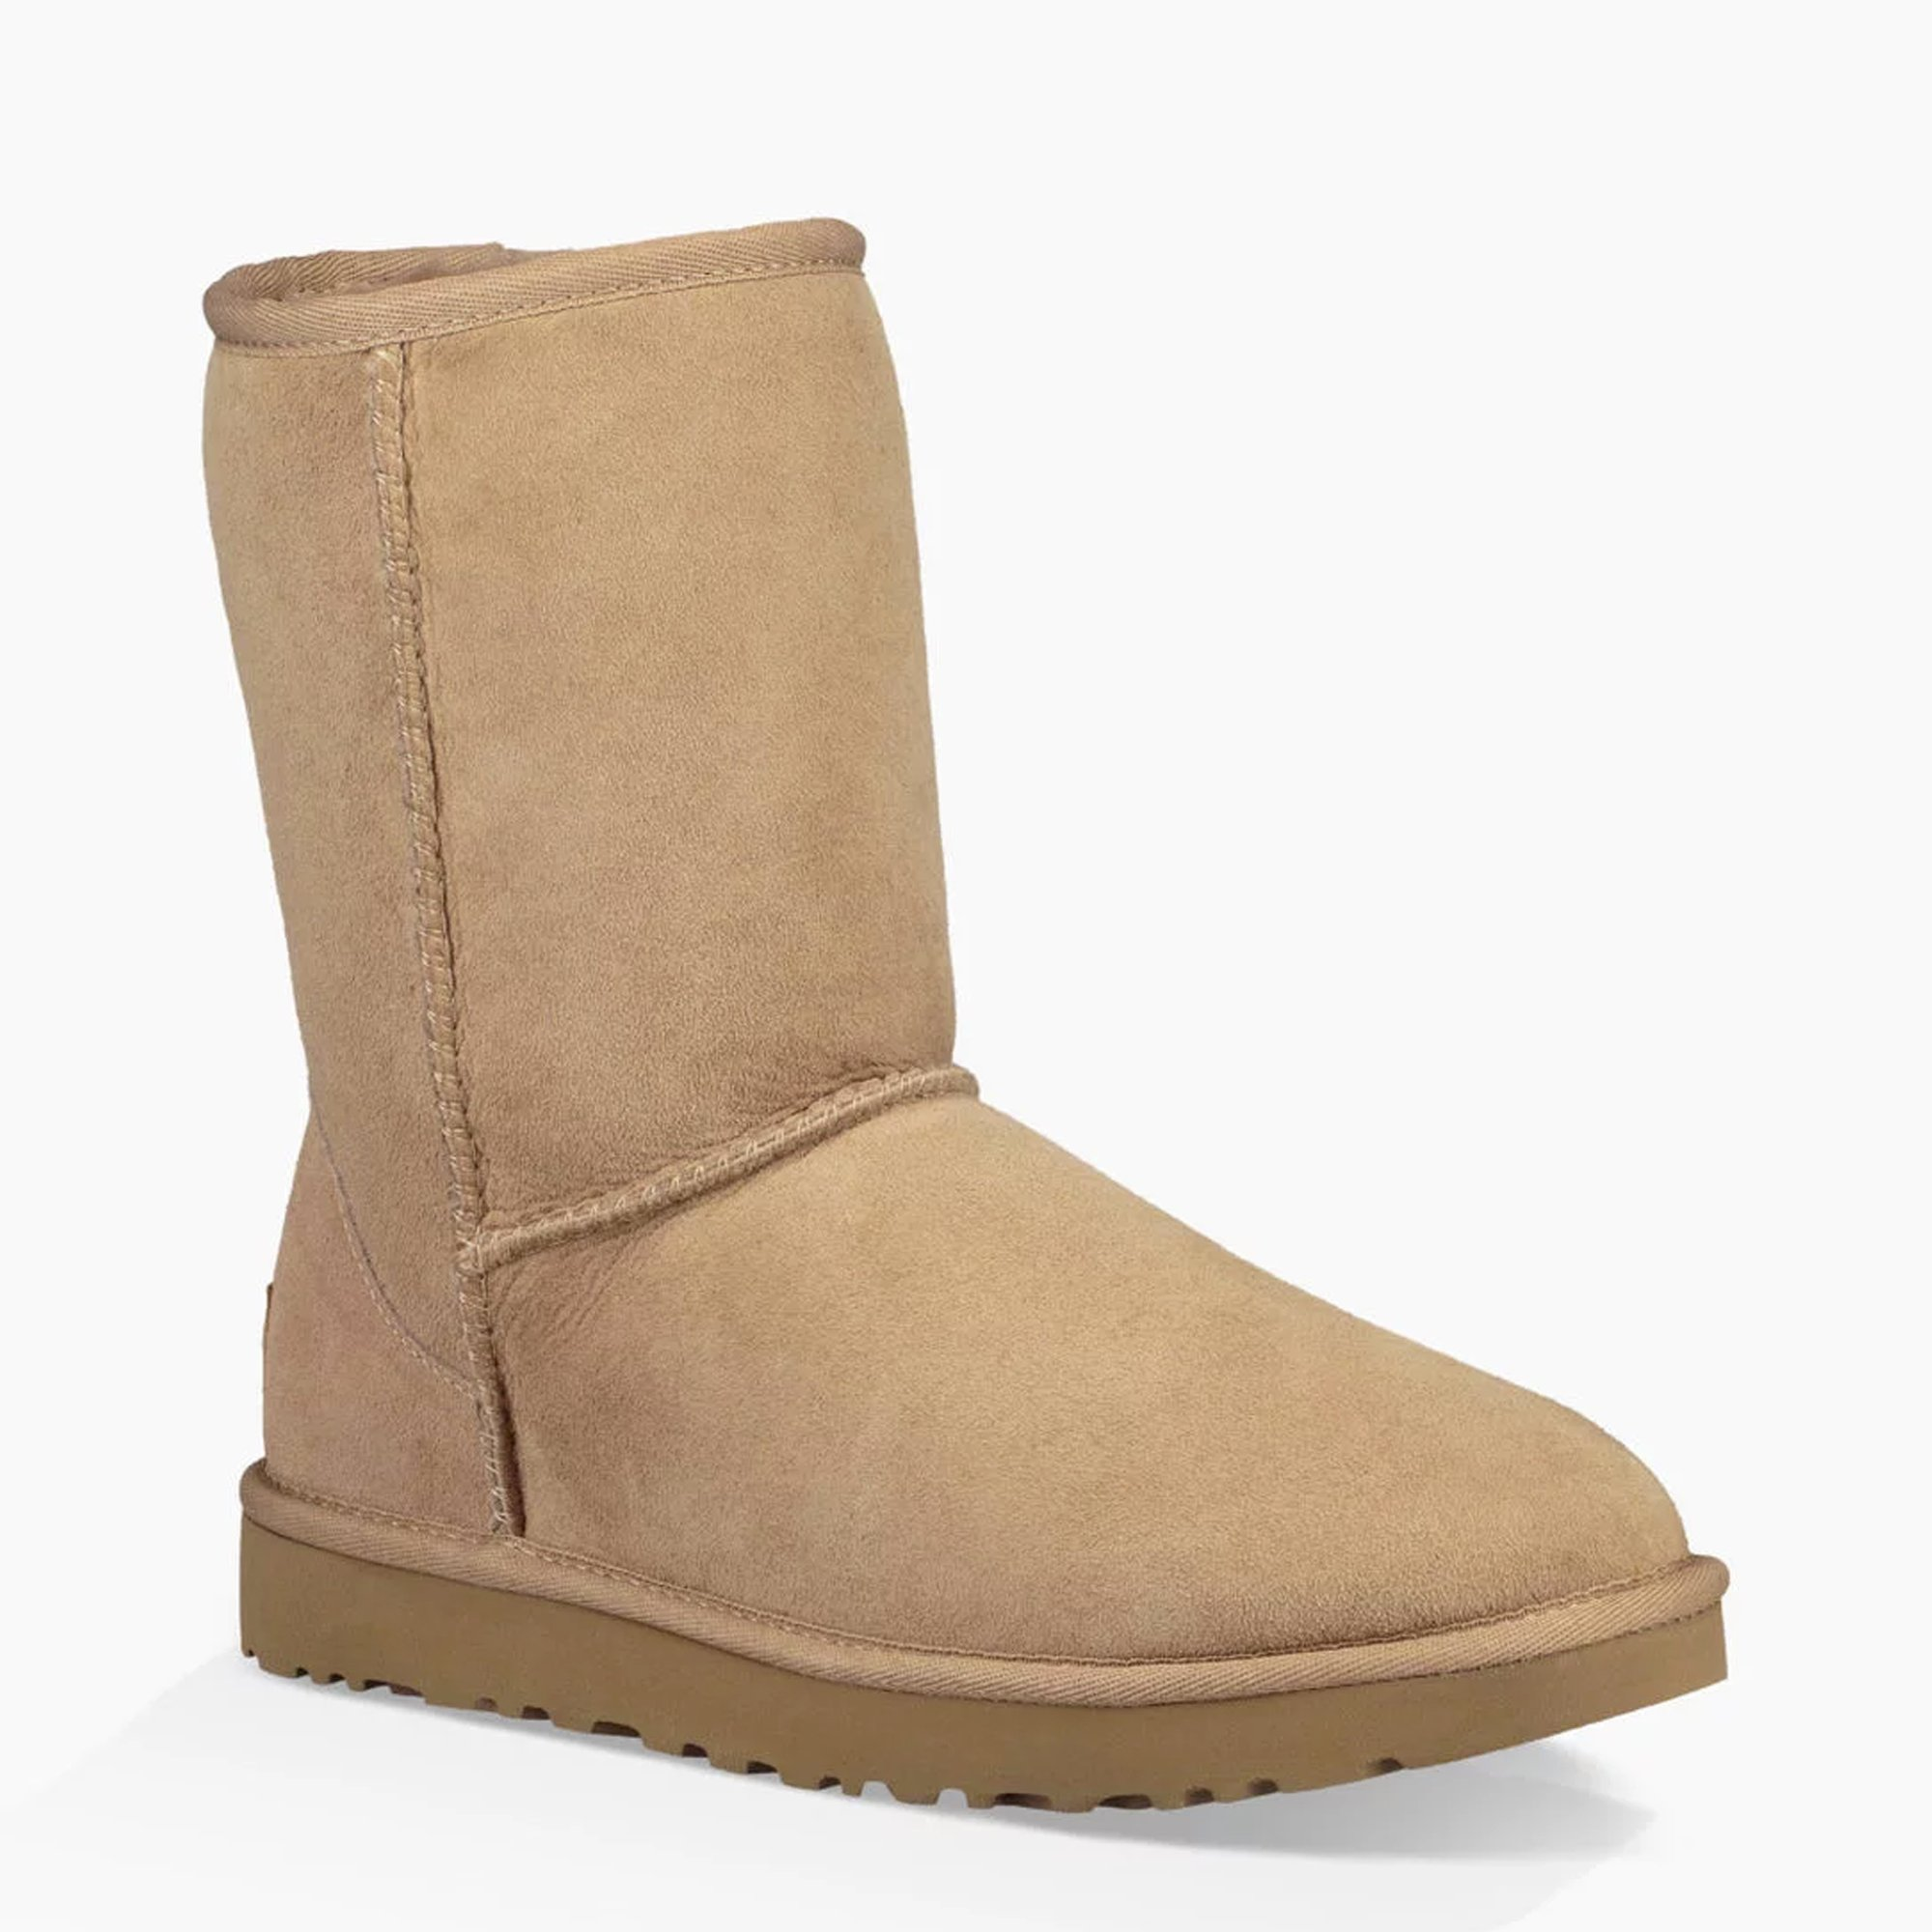 UGG New Women's Classic Short II Boot Fawn 7 by UGG